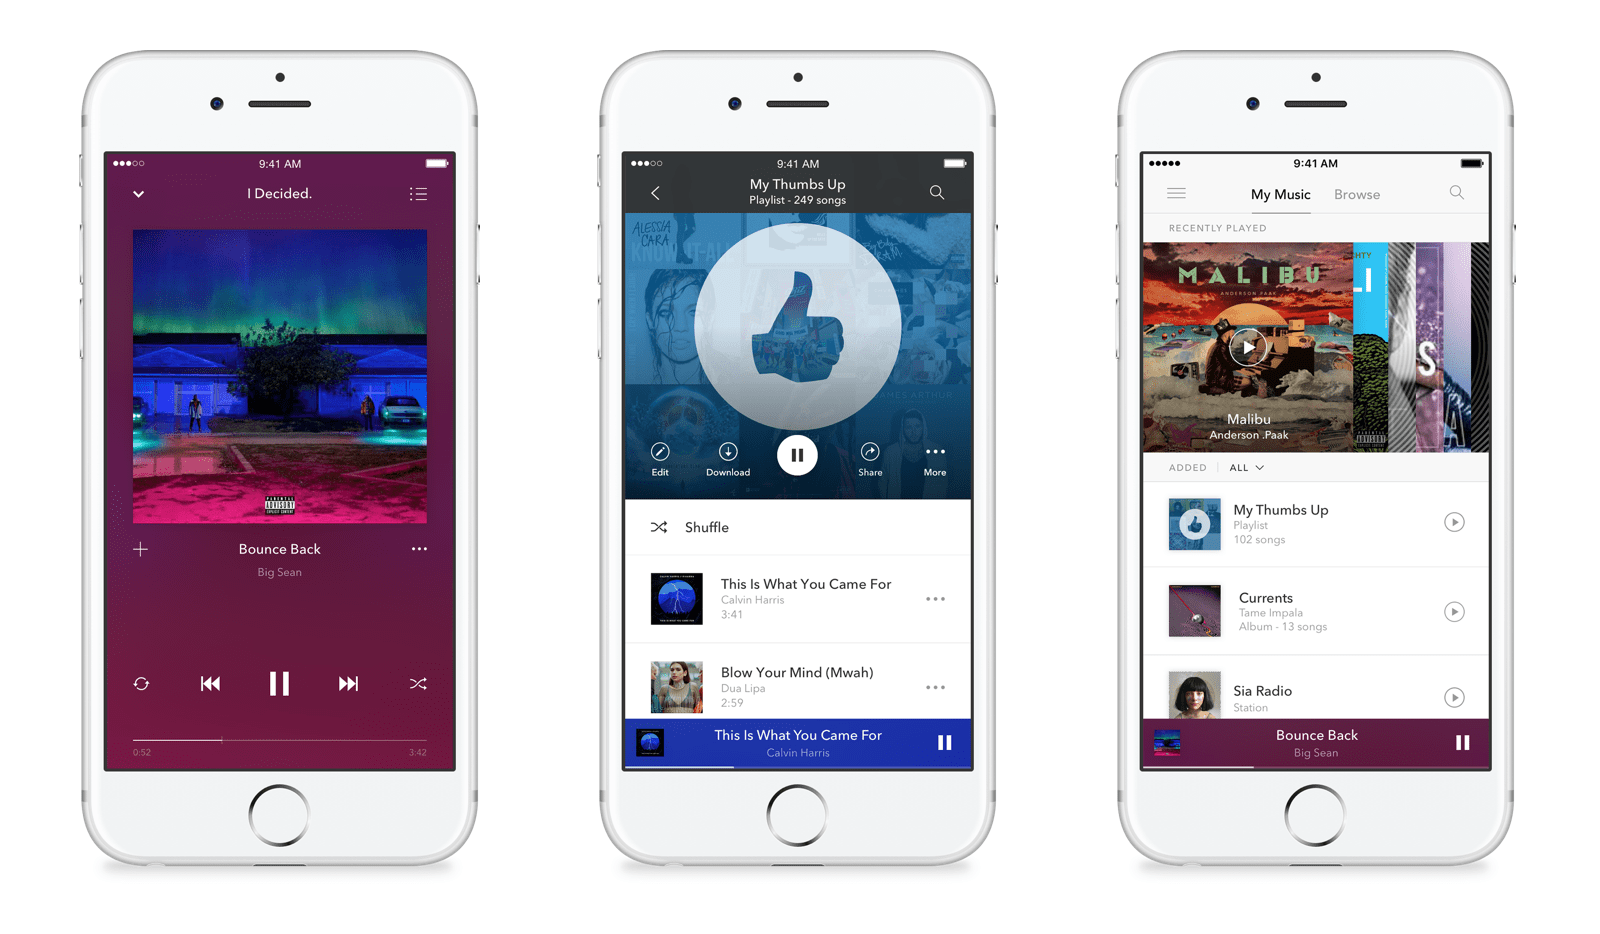 Pandora's new on-demand music service is beautiful, but is